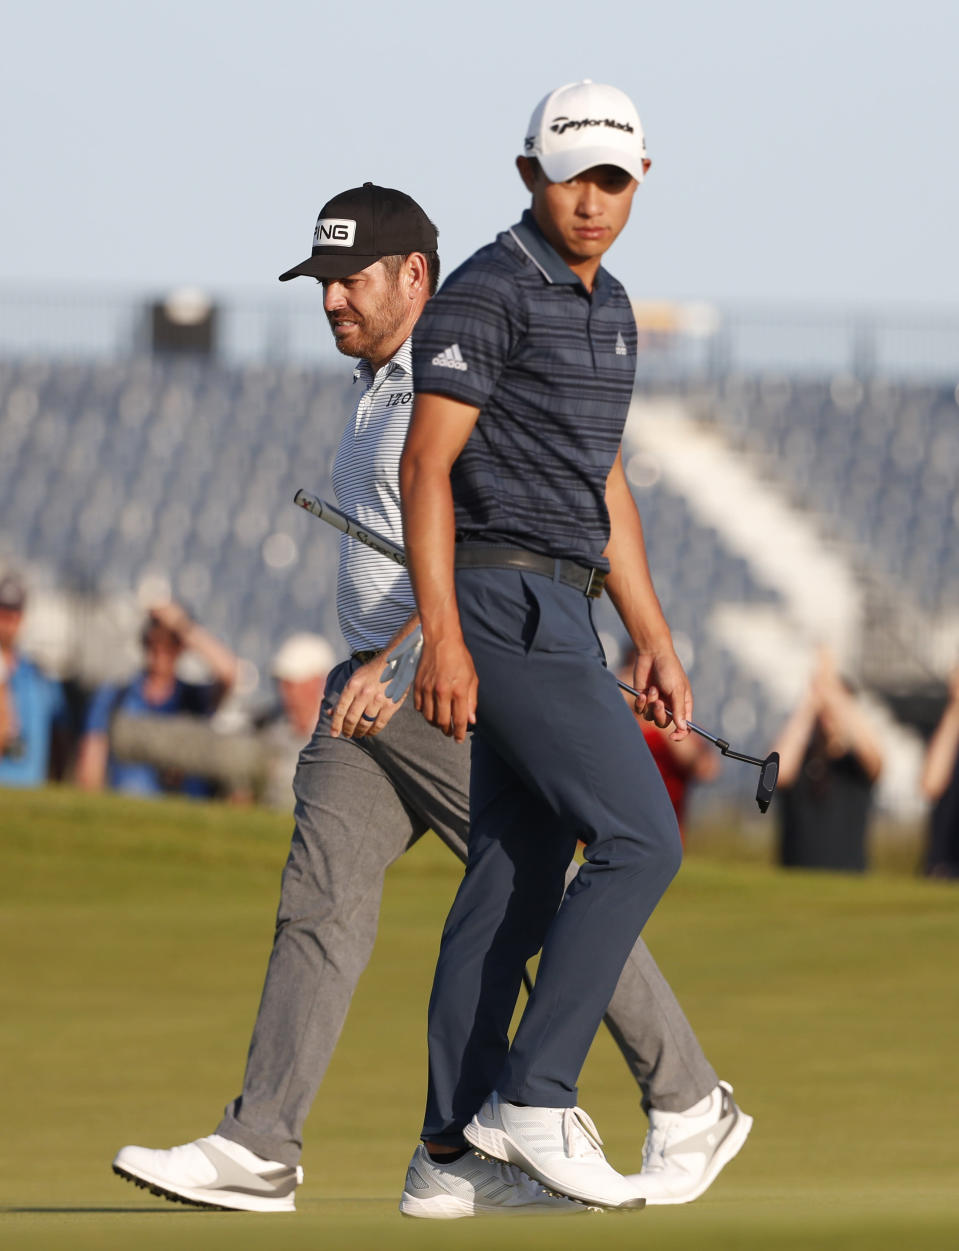 South Africa's Louis Oosthuizen, rear walks on the 17th green as tUnited States' Collin Morikawa, passes during the third round of the British Open Golf Championship at Royal St George's golf course Sandwich, England, Saturday, July 17, 2021. (AP Photo/Peter Morrison)